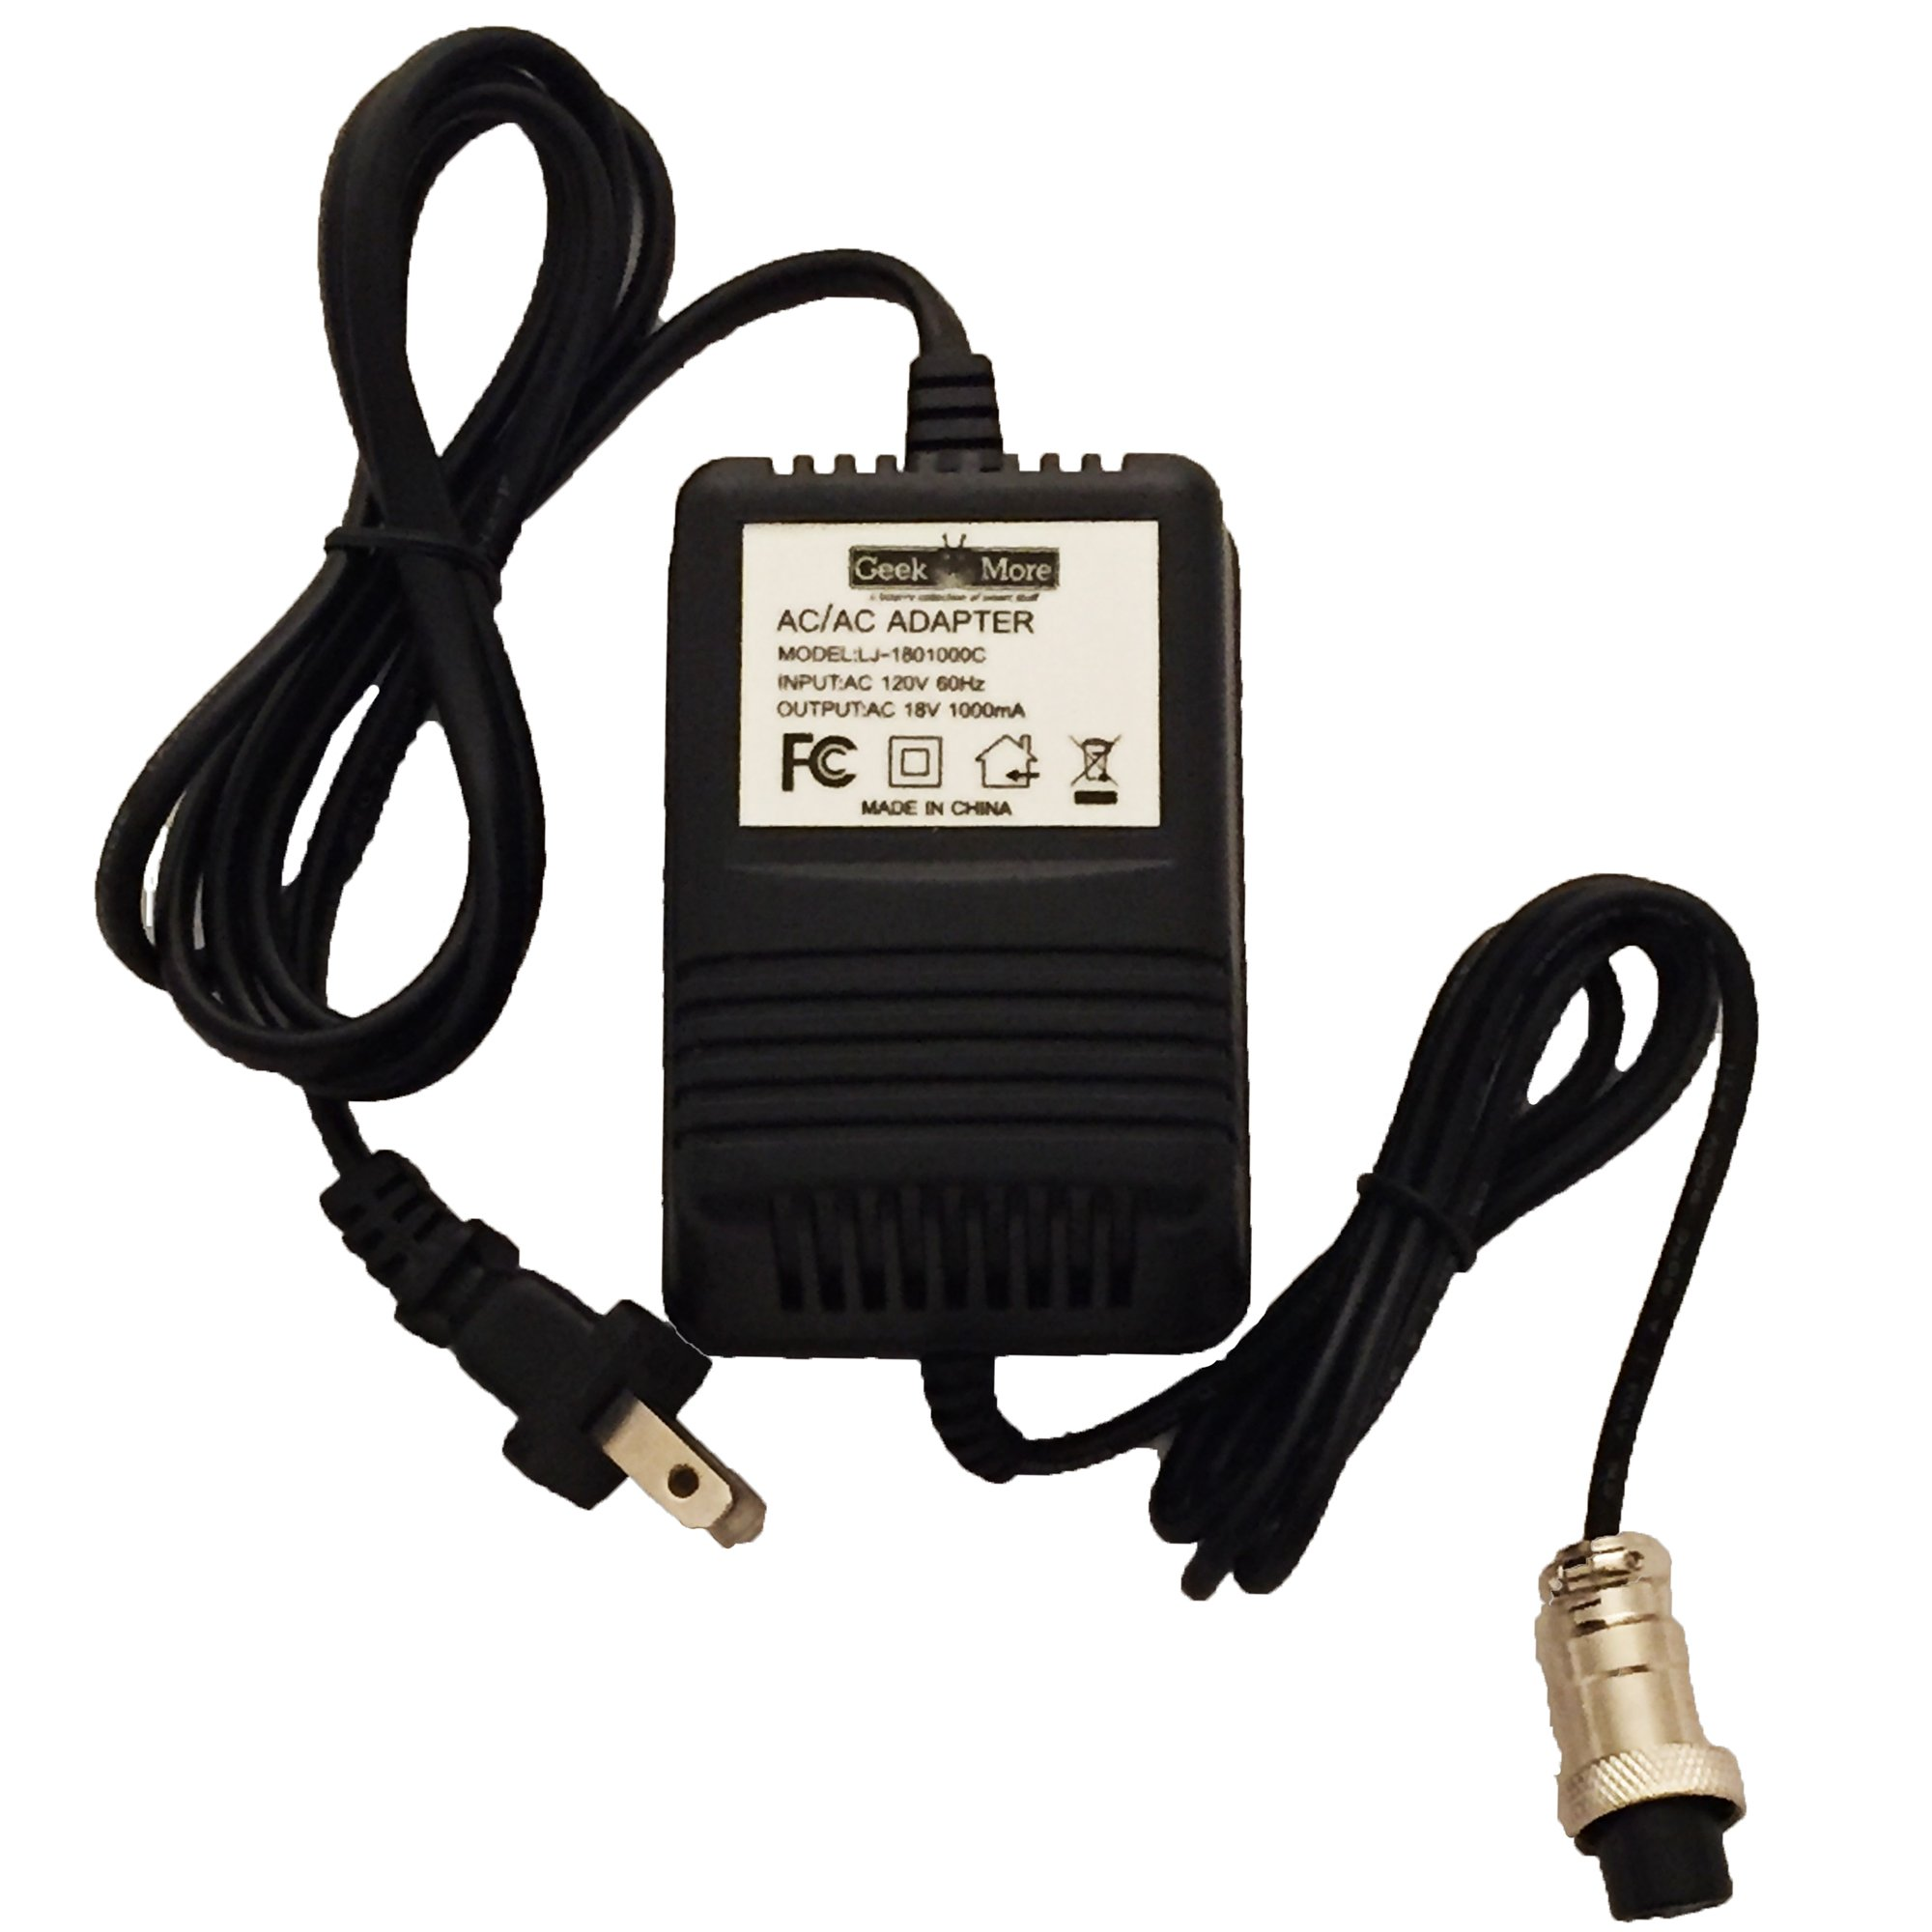 AC Power Adapter - for Alesis MultiMix 6 FX/USB, 8 FX/USB, 12 FX/FXD/USB units